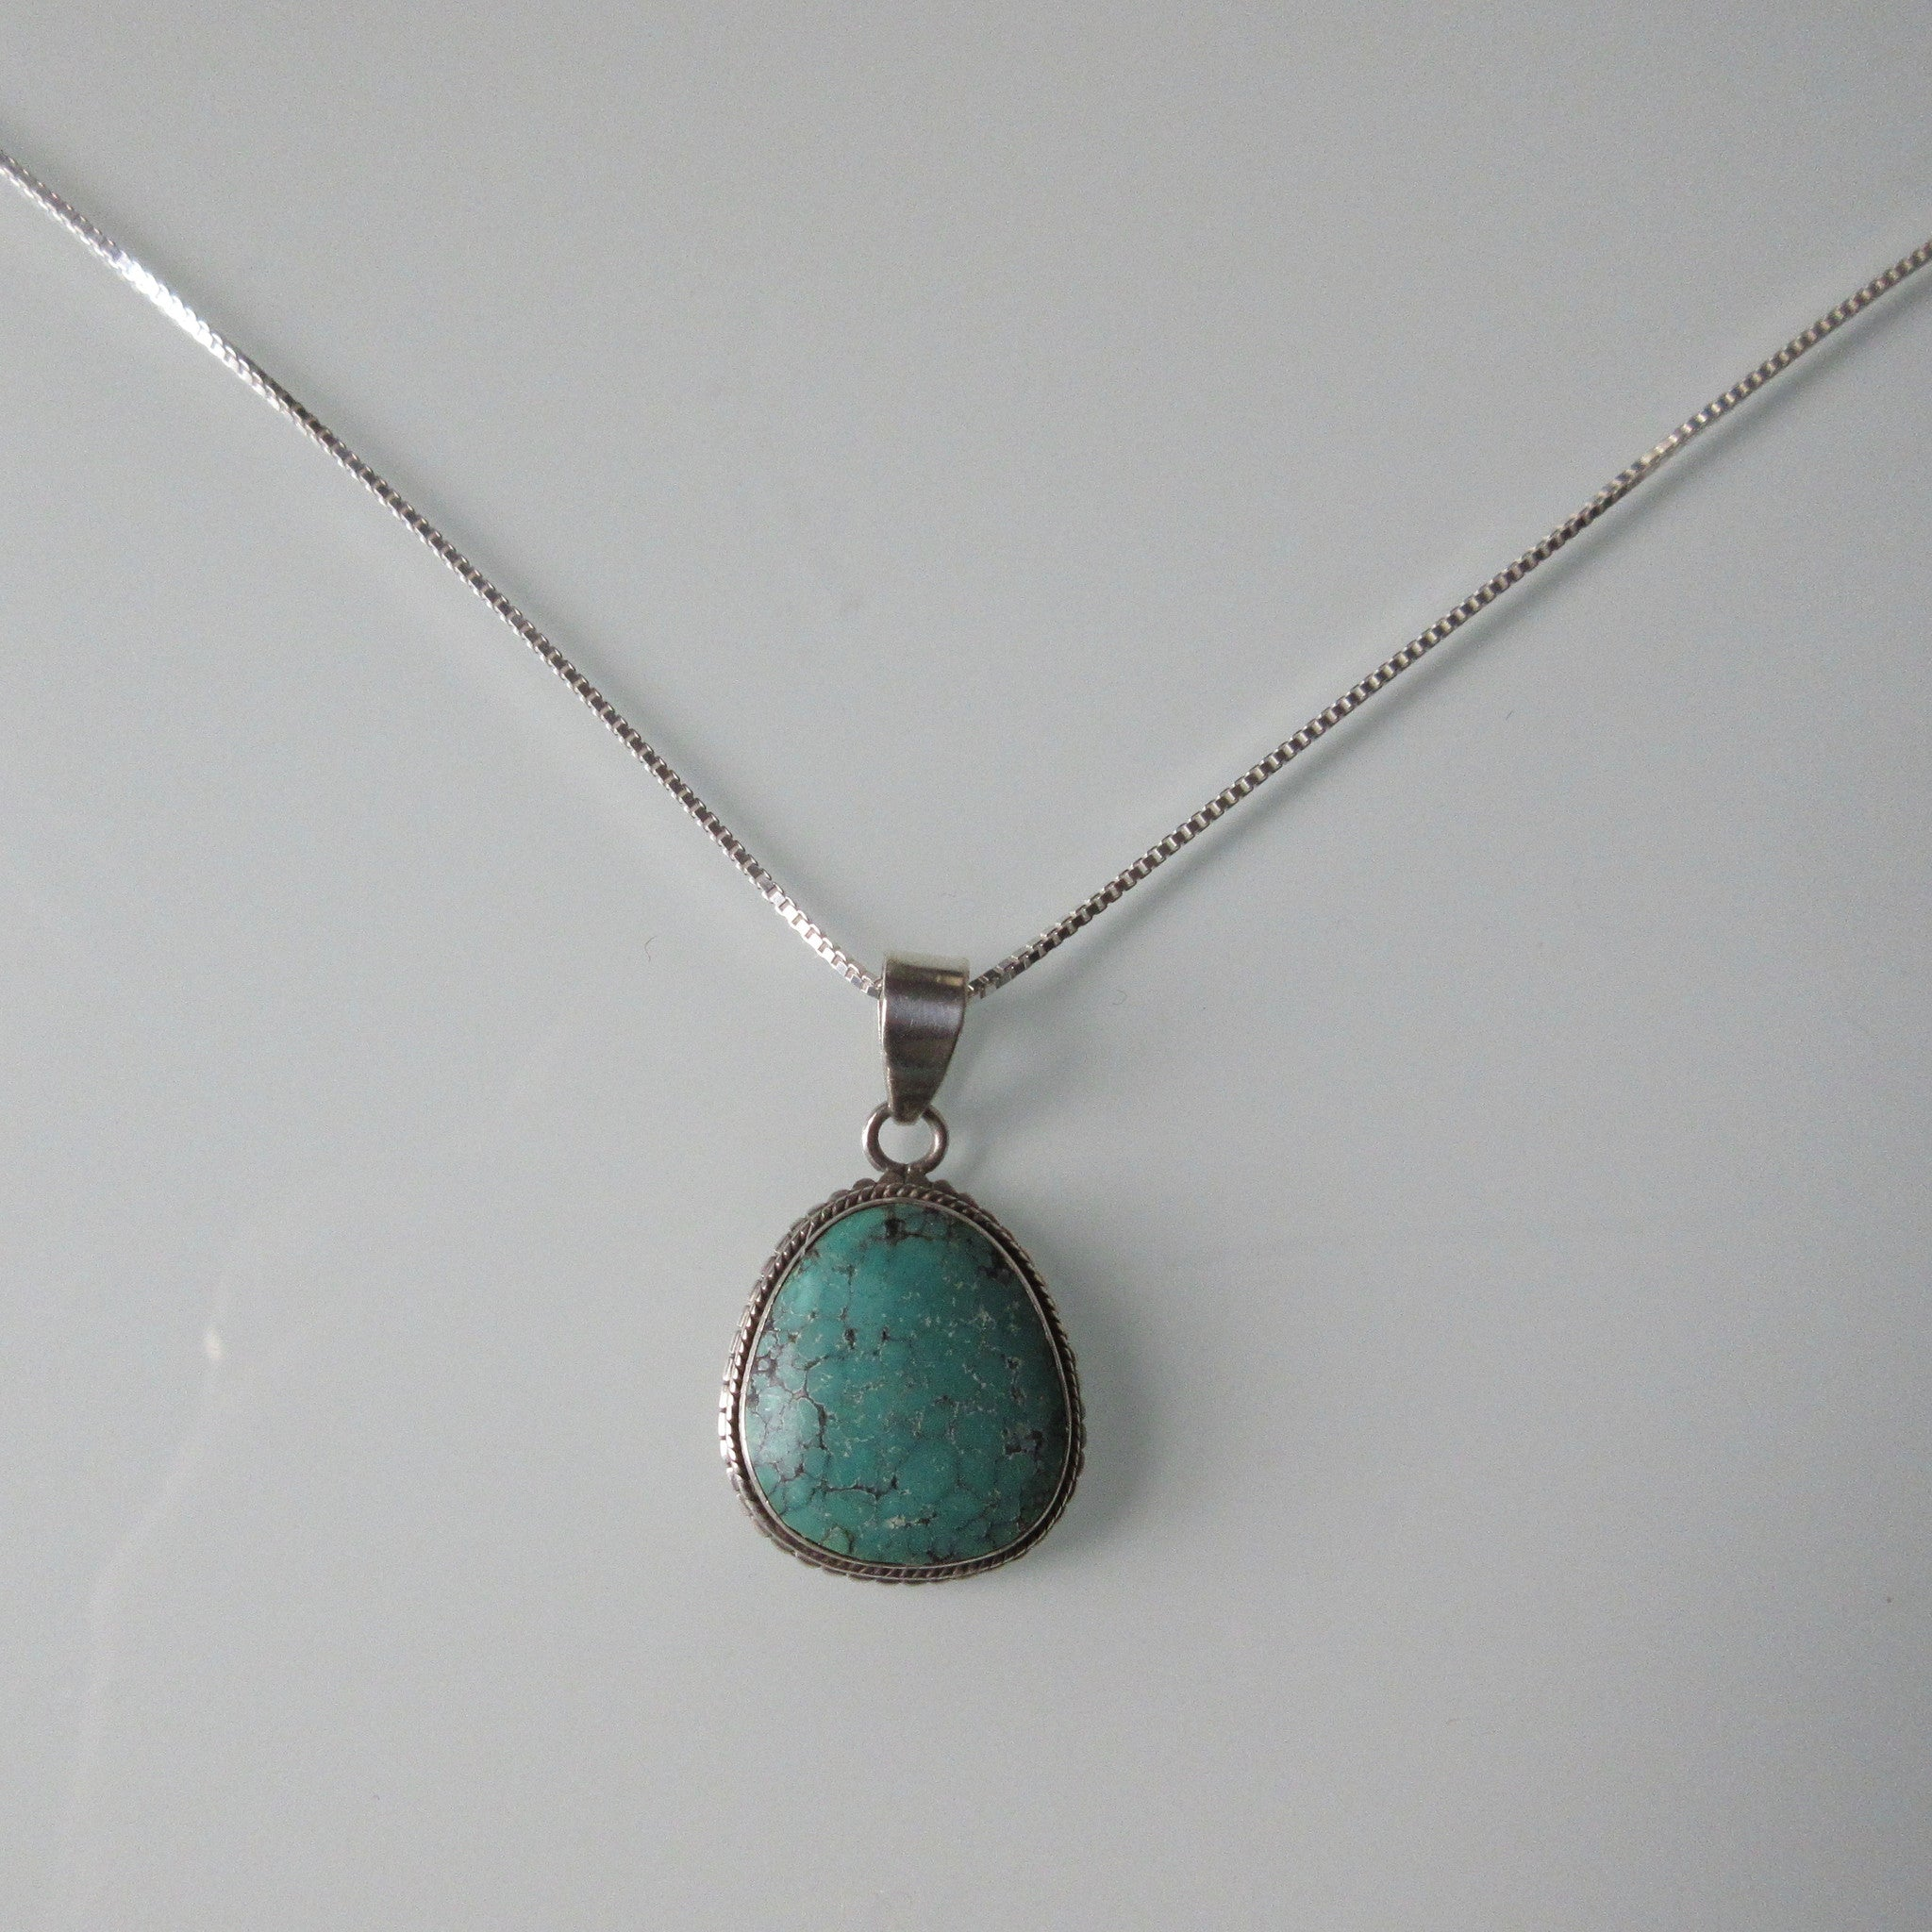 Turquoise Pendant & Sterling Silver Chain 22""